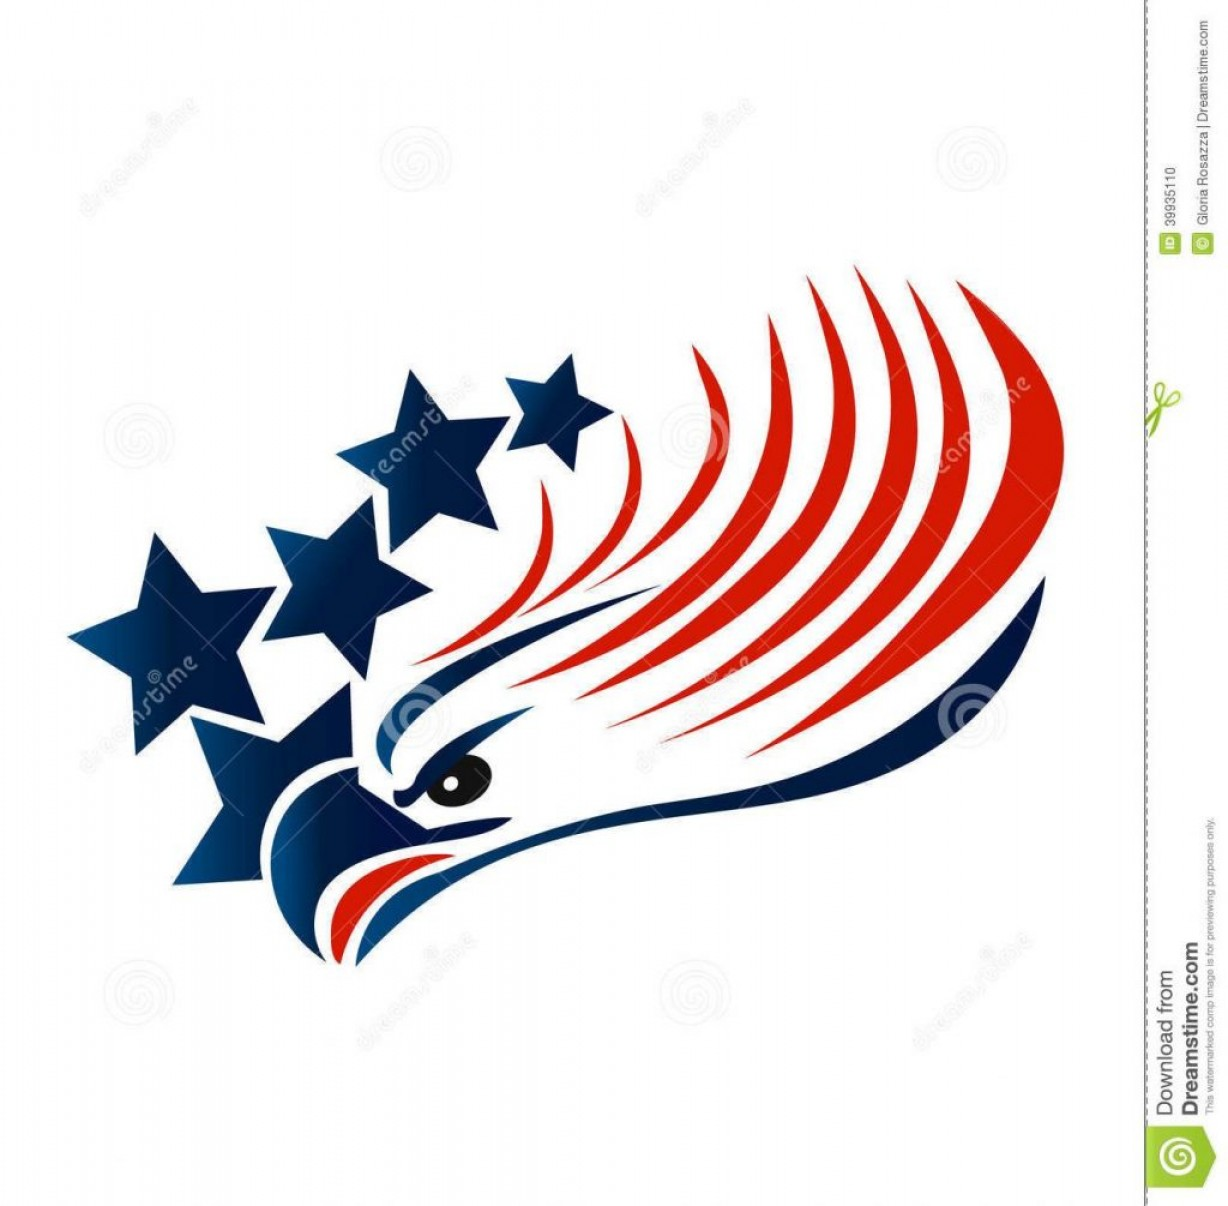 Patriotic Bald Eagle Vector: Hd Bald Eagle American Flag Vector Image